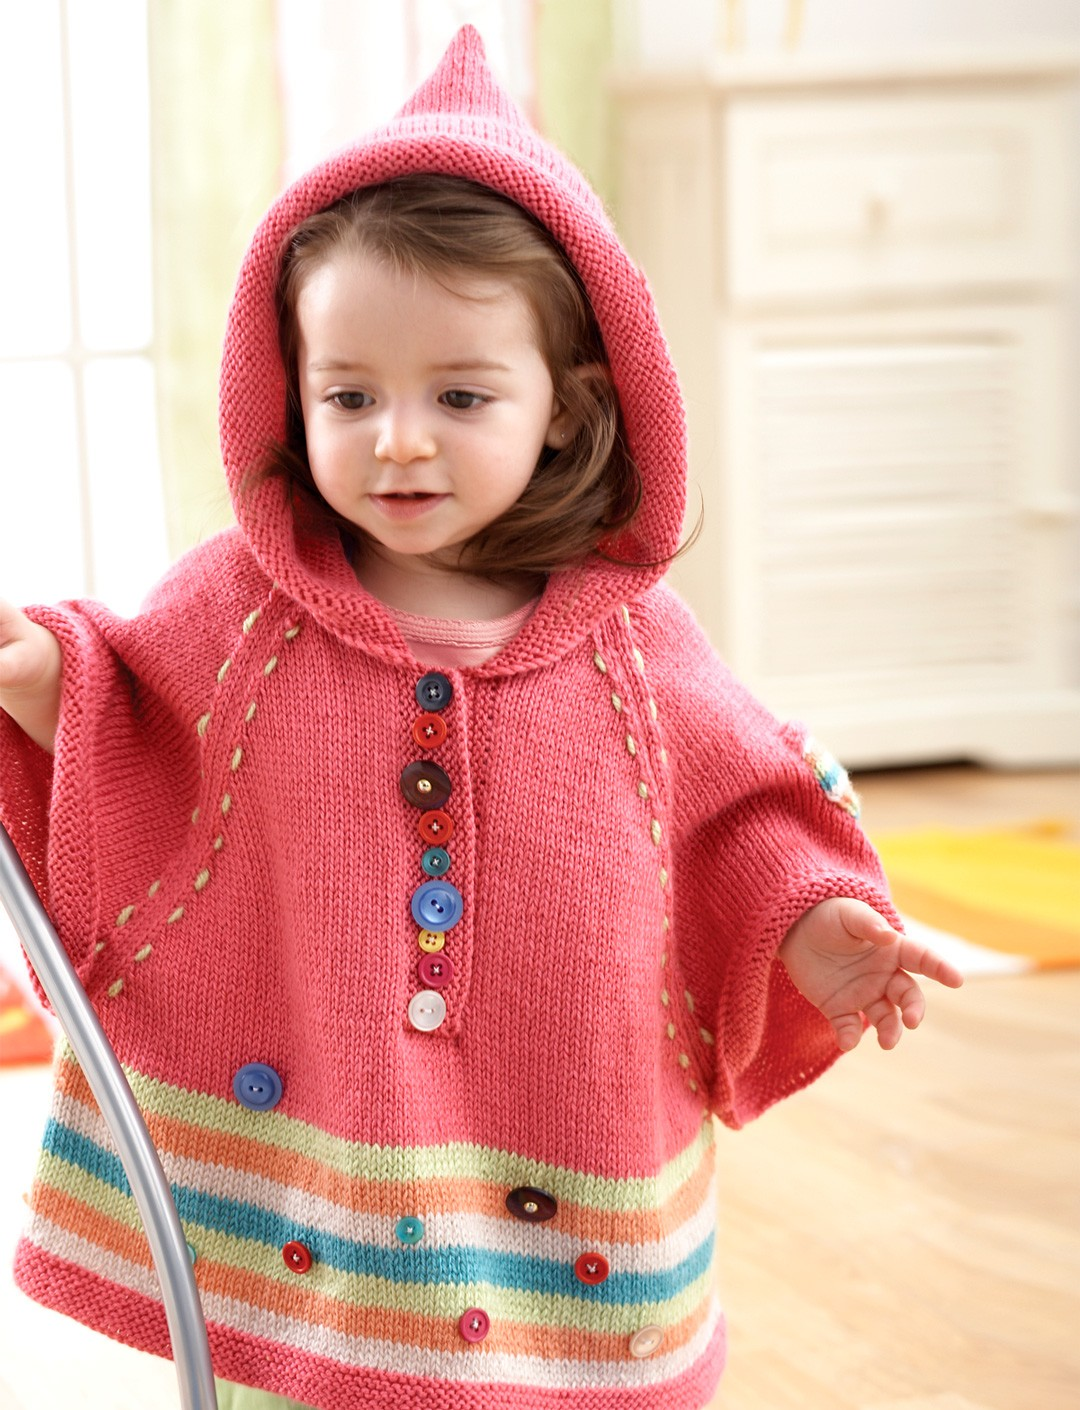 Knitting Pattern Baby Poncho With Hood : Hooded Poncho - Patterns Yarnspirations